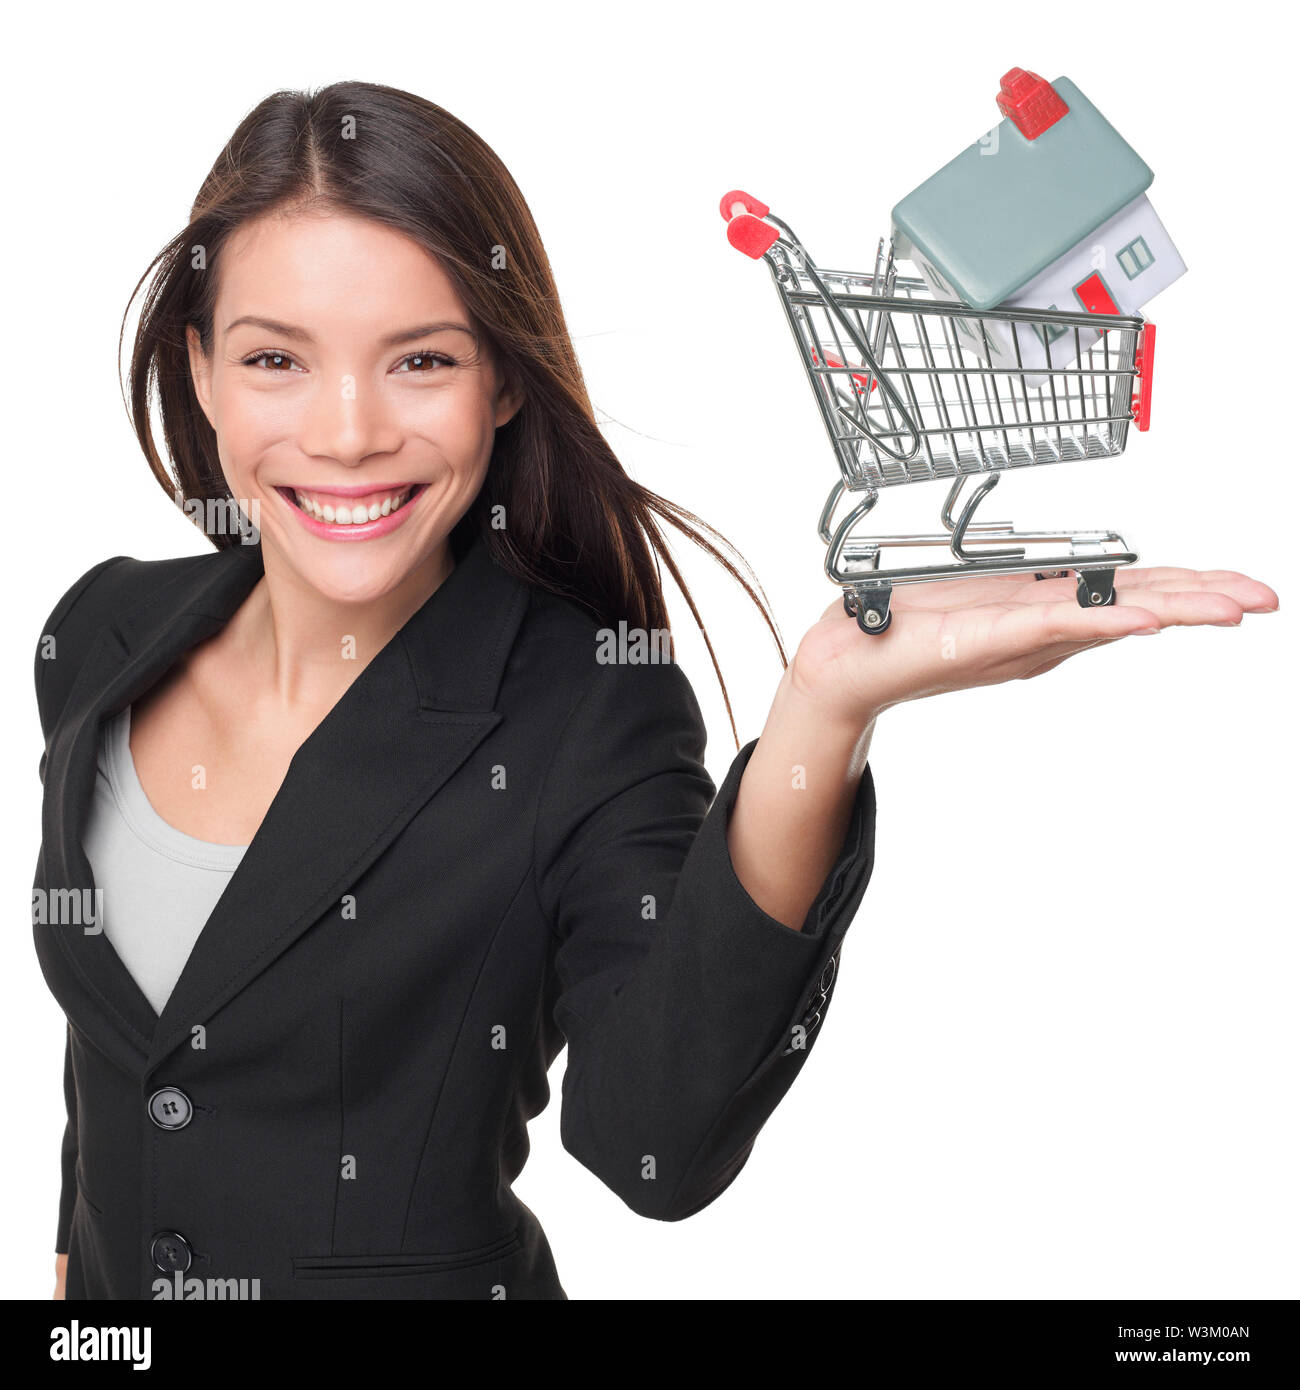 Real estate agent selling home holding mini house in shopping cart. Female realtor in business suit showing model house smiling happy isolated on white background. Multiracial Asian woman agent. Stock Photo